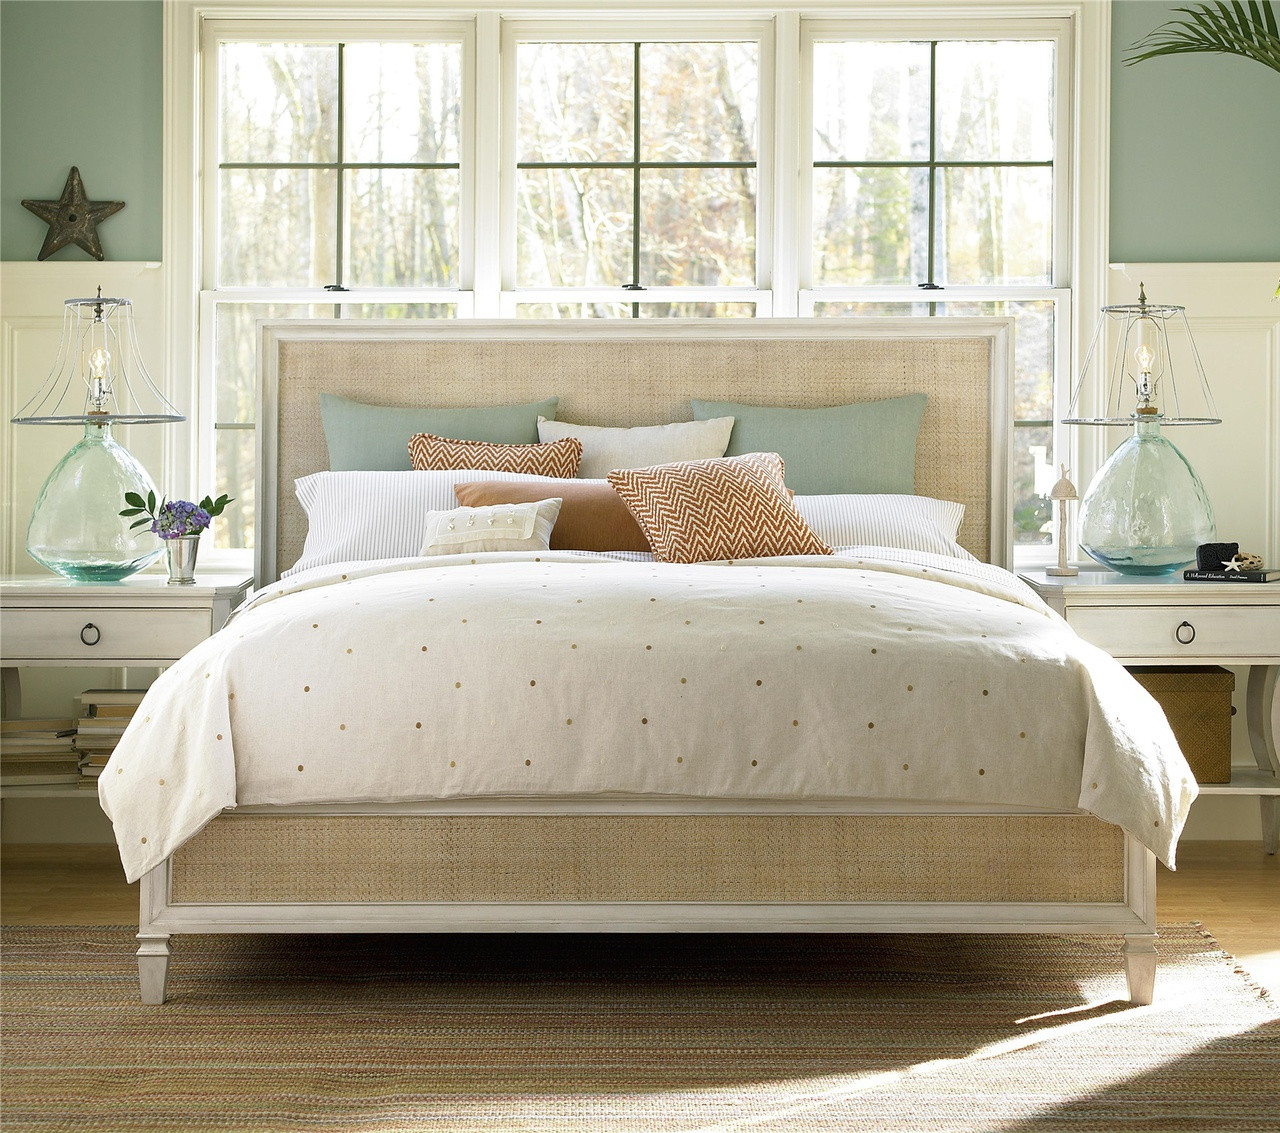 Country-Chic Woven Rattan Panel Bed Frame | Zin Home